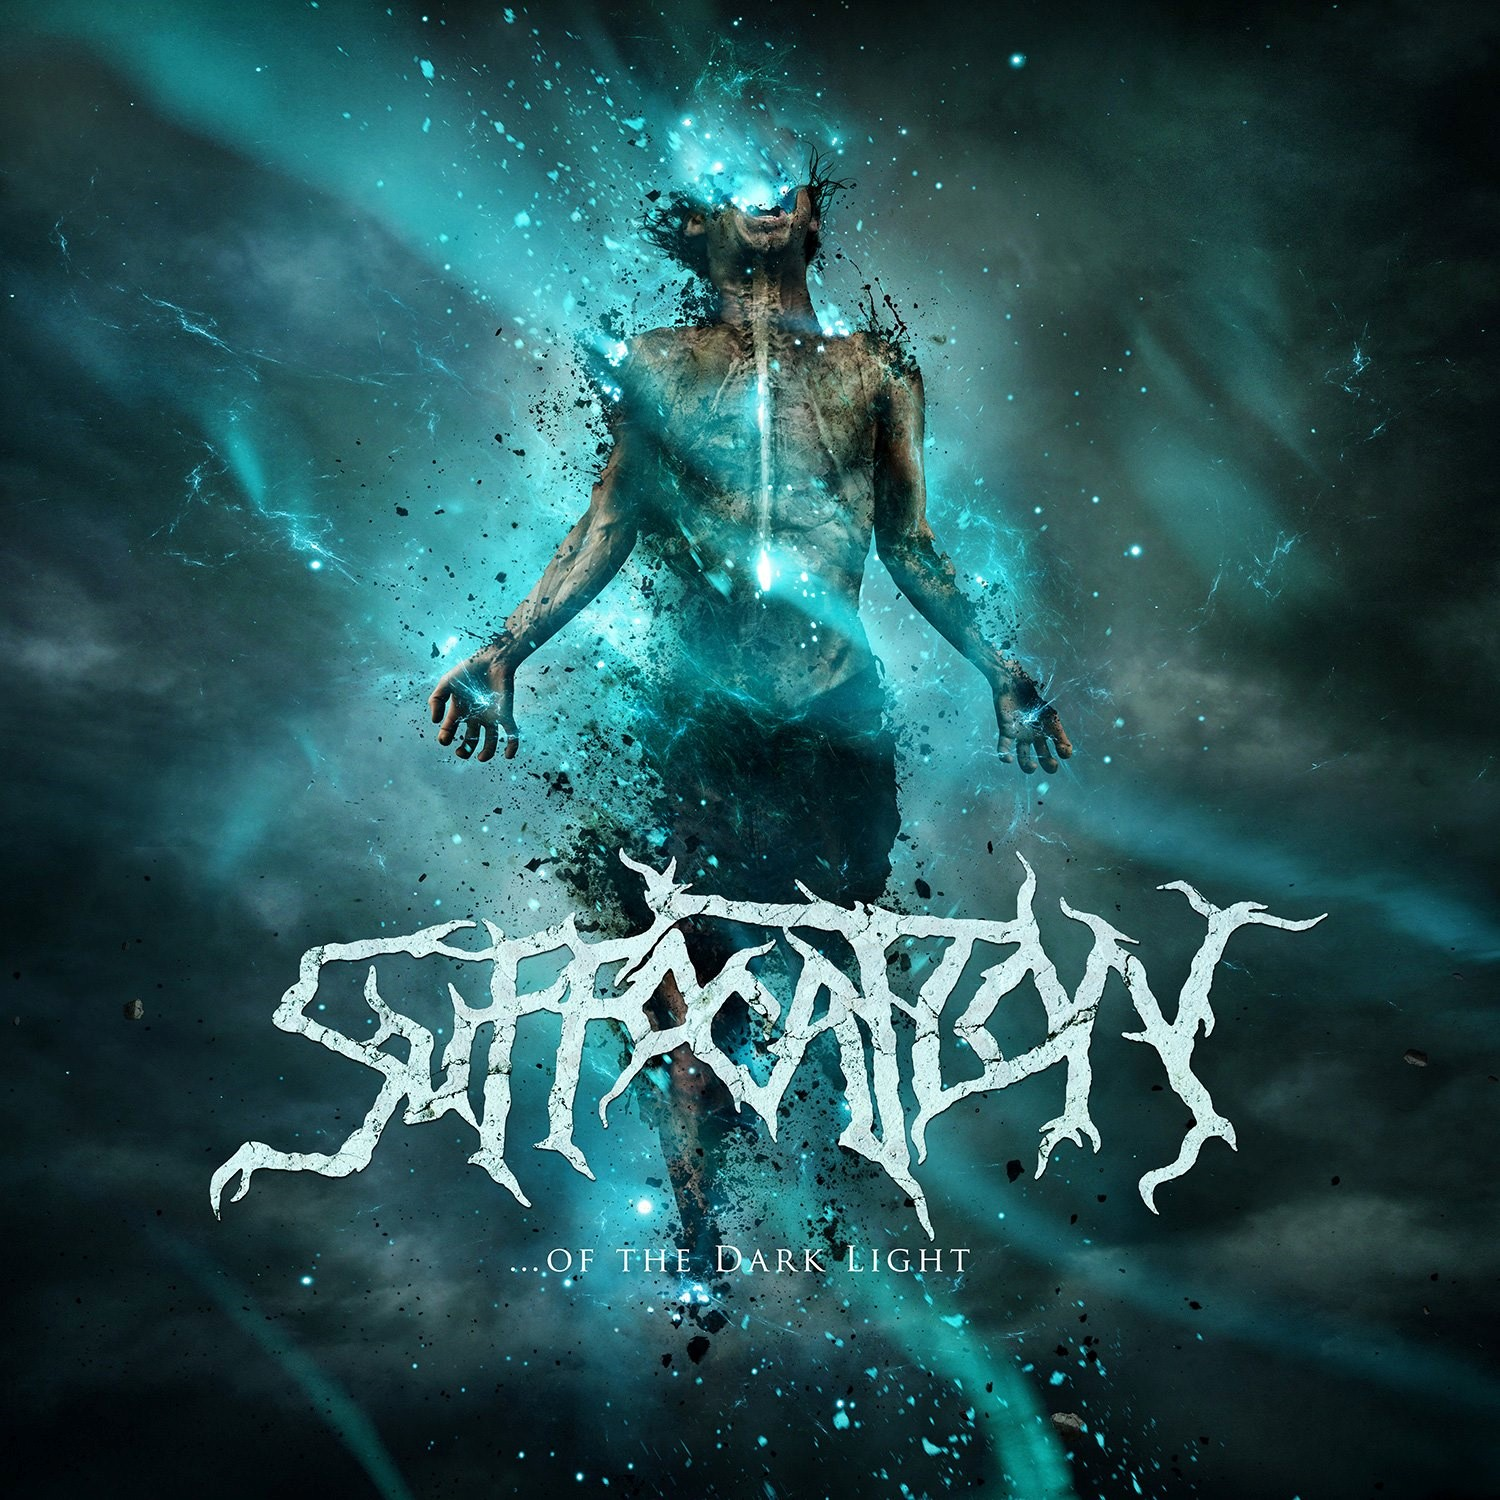 Suffocation: Of the Dark Light